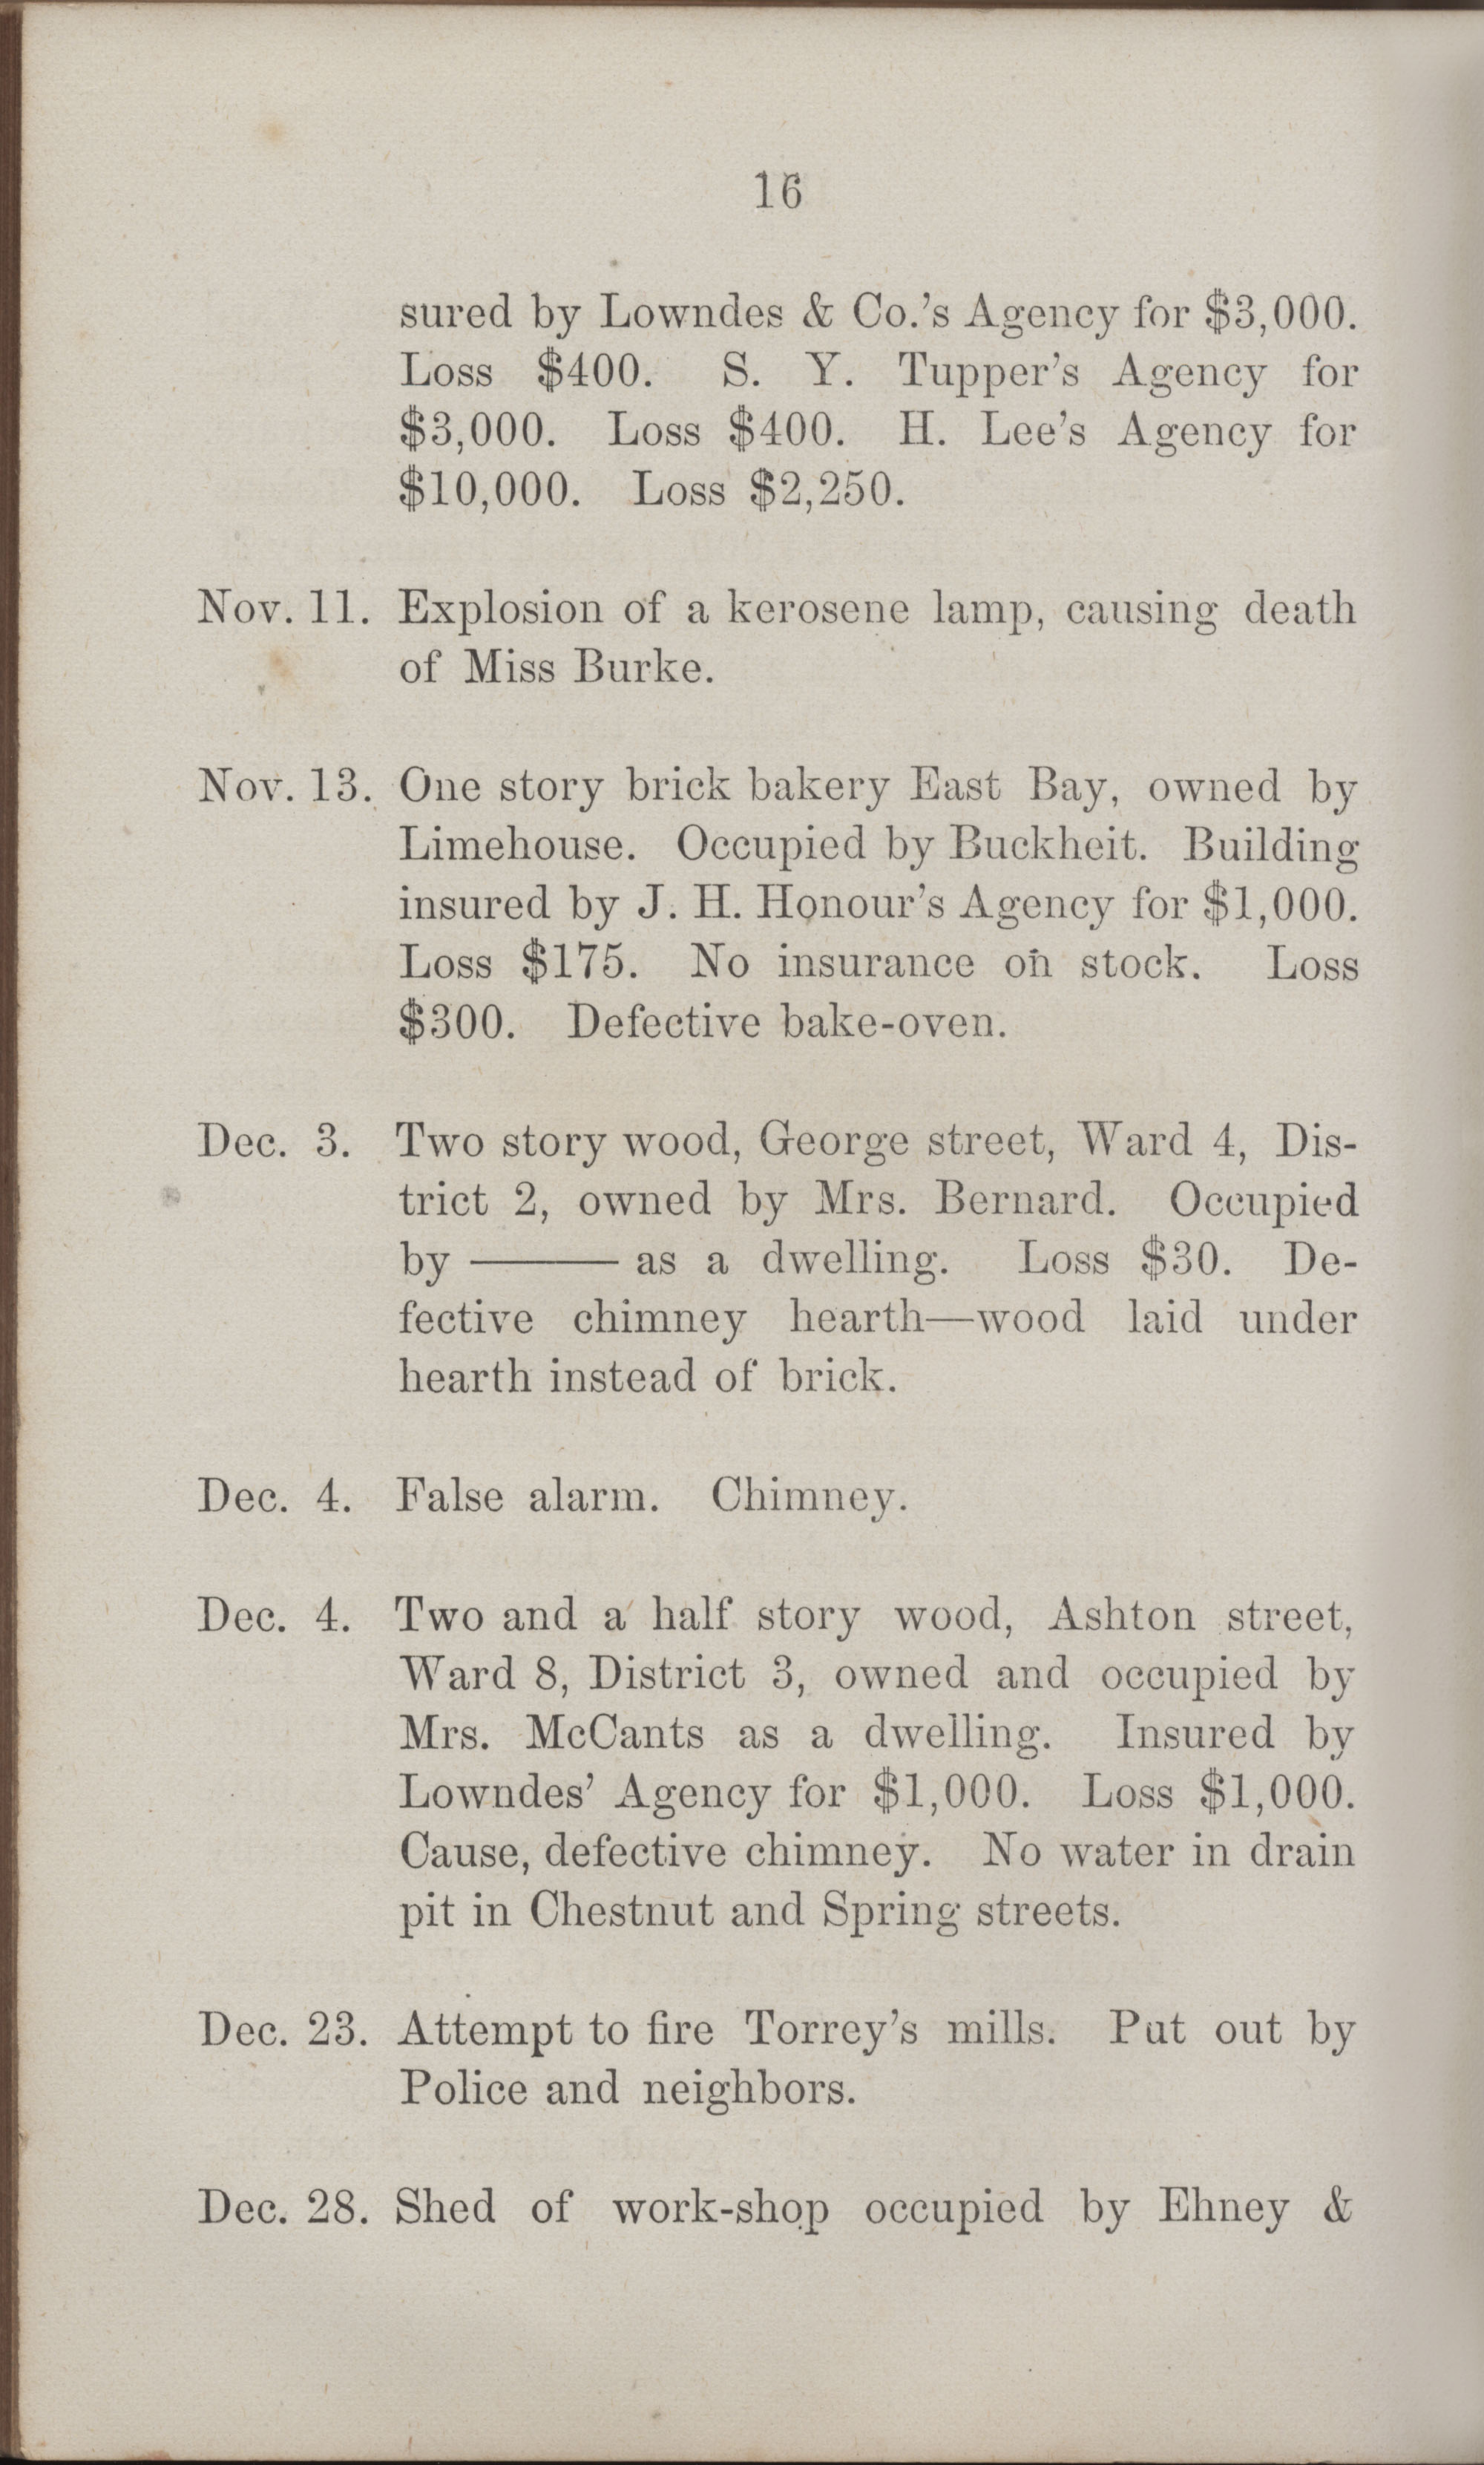 Annual Report of the Chief of the Fire Department of the City of Charleston, page 411